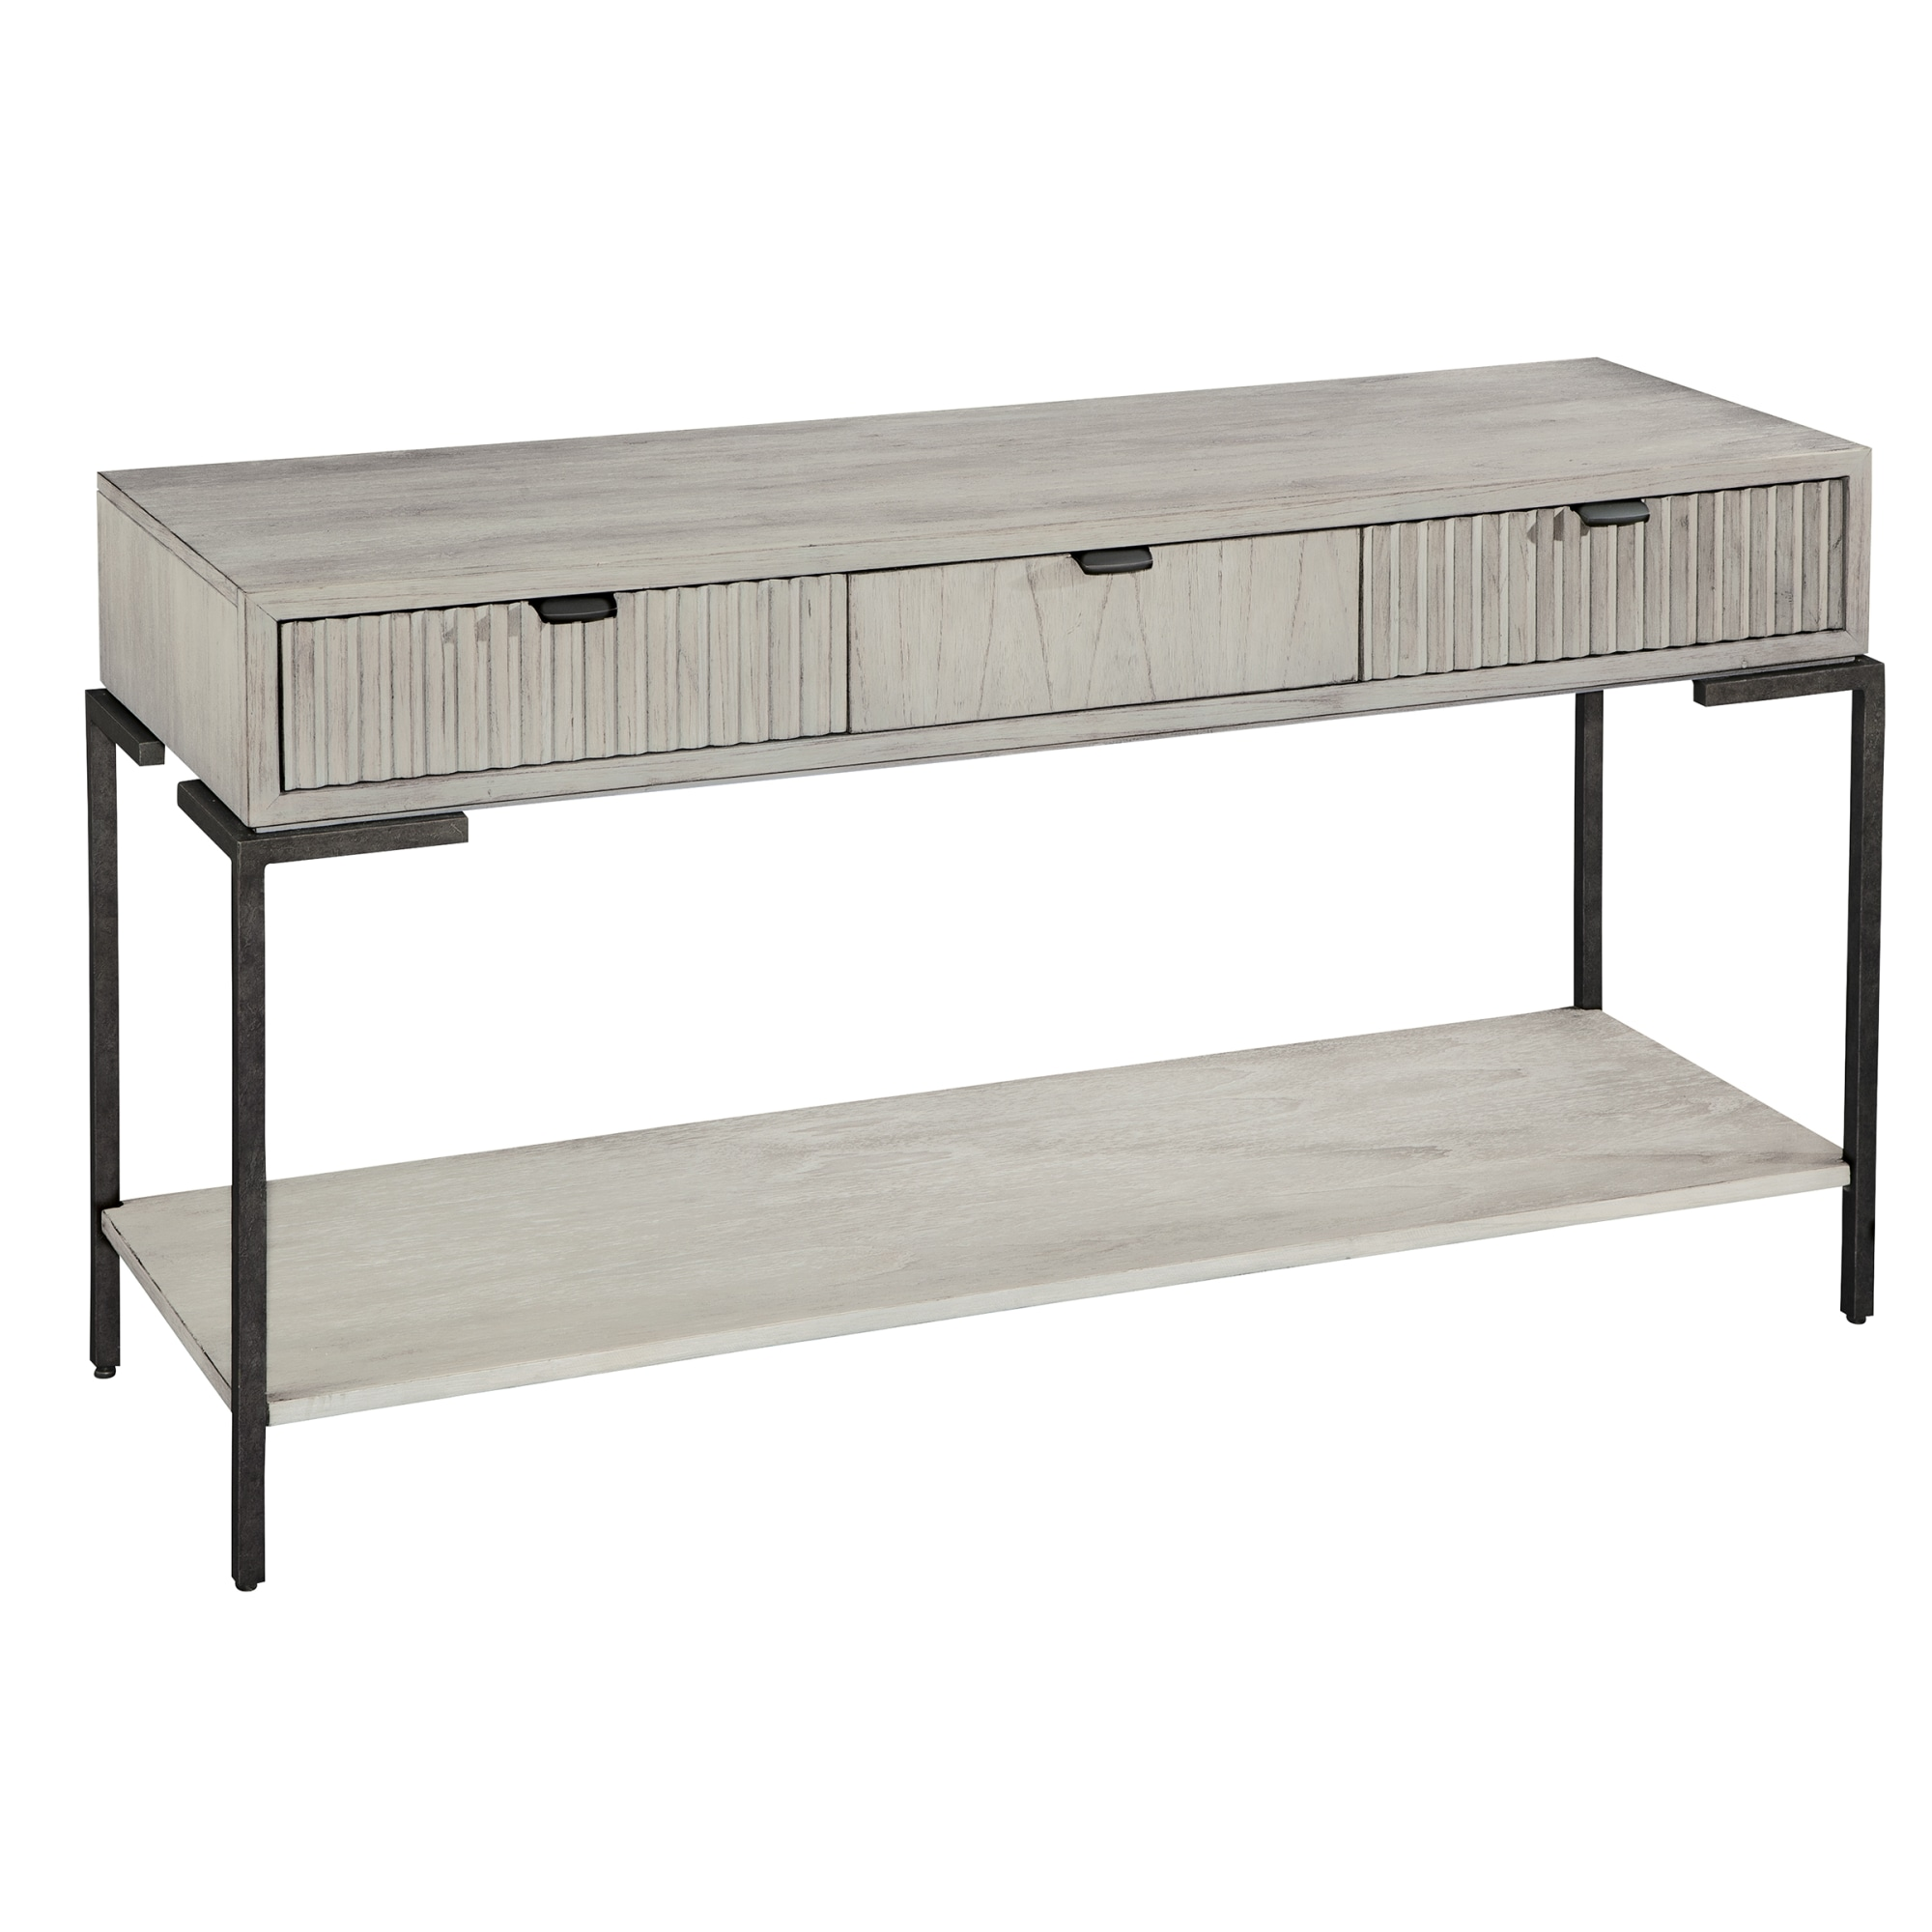 Image for 2-4108 Sierra Heights Sofa Table with Drawers from Hekman Official Website